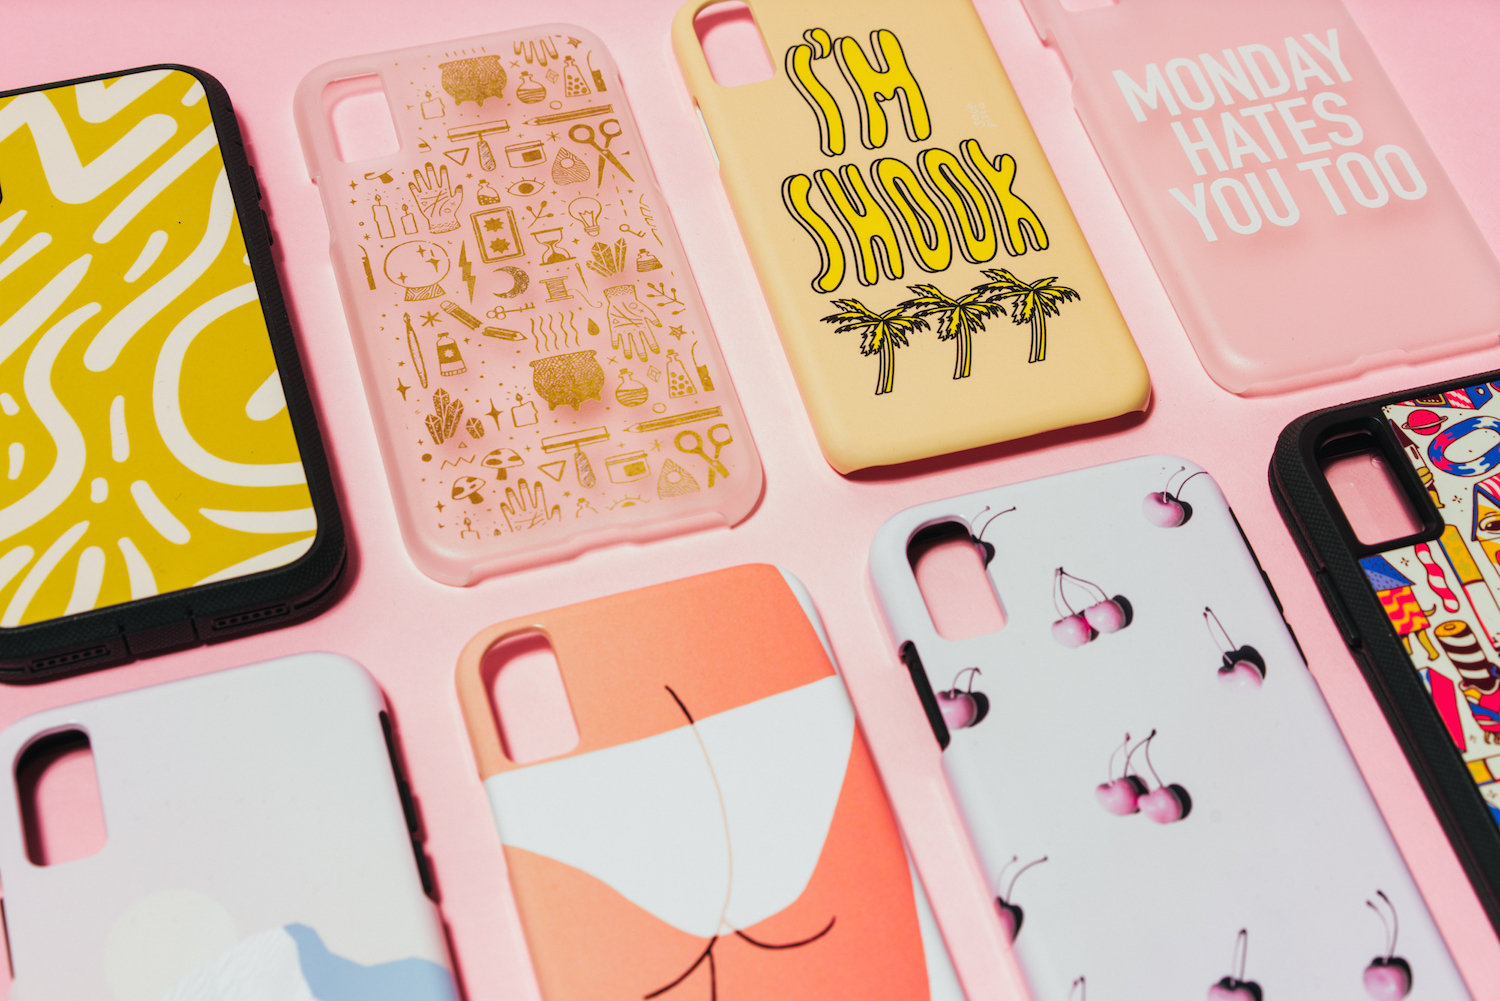 differently 4f118 c5568 iPhone X Cases Available For Pre-Order! - Society6 Blog